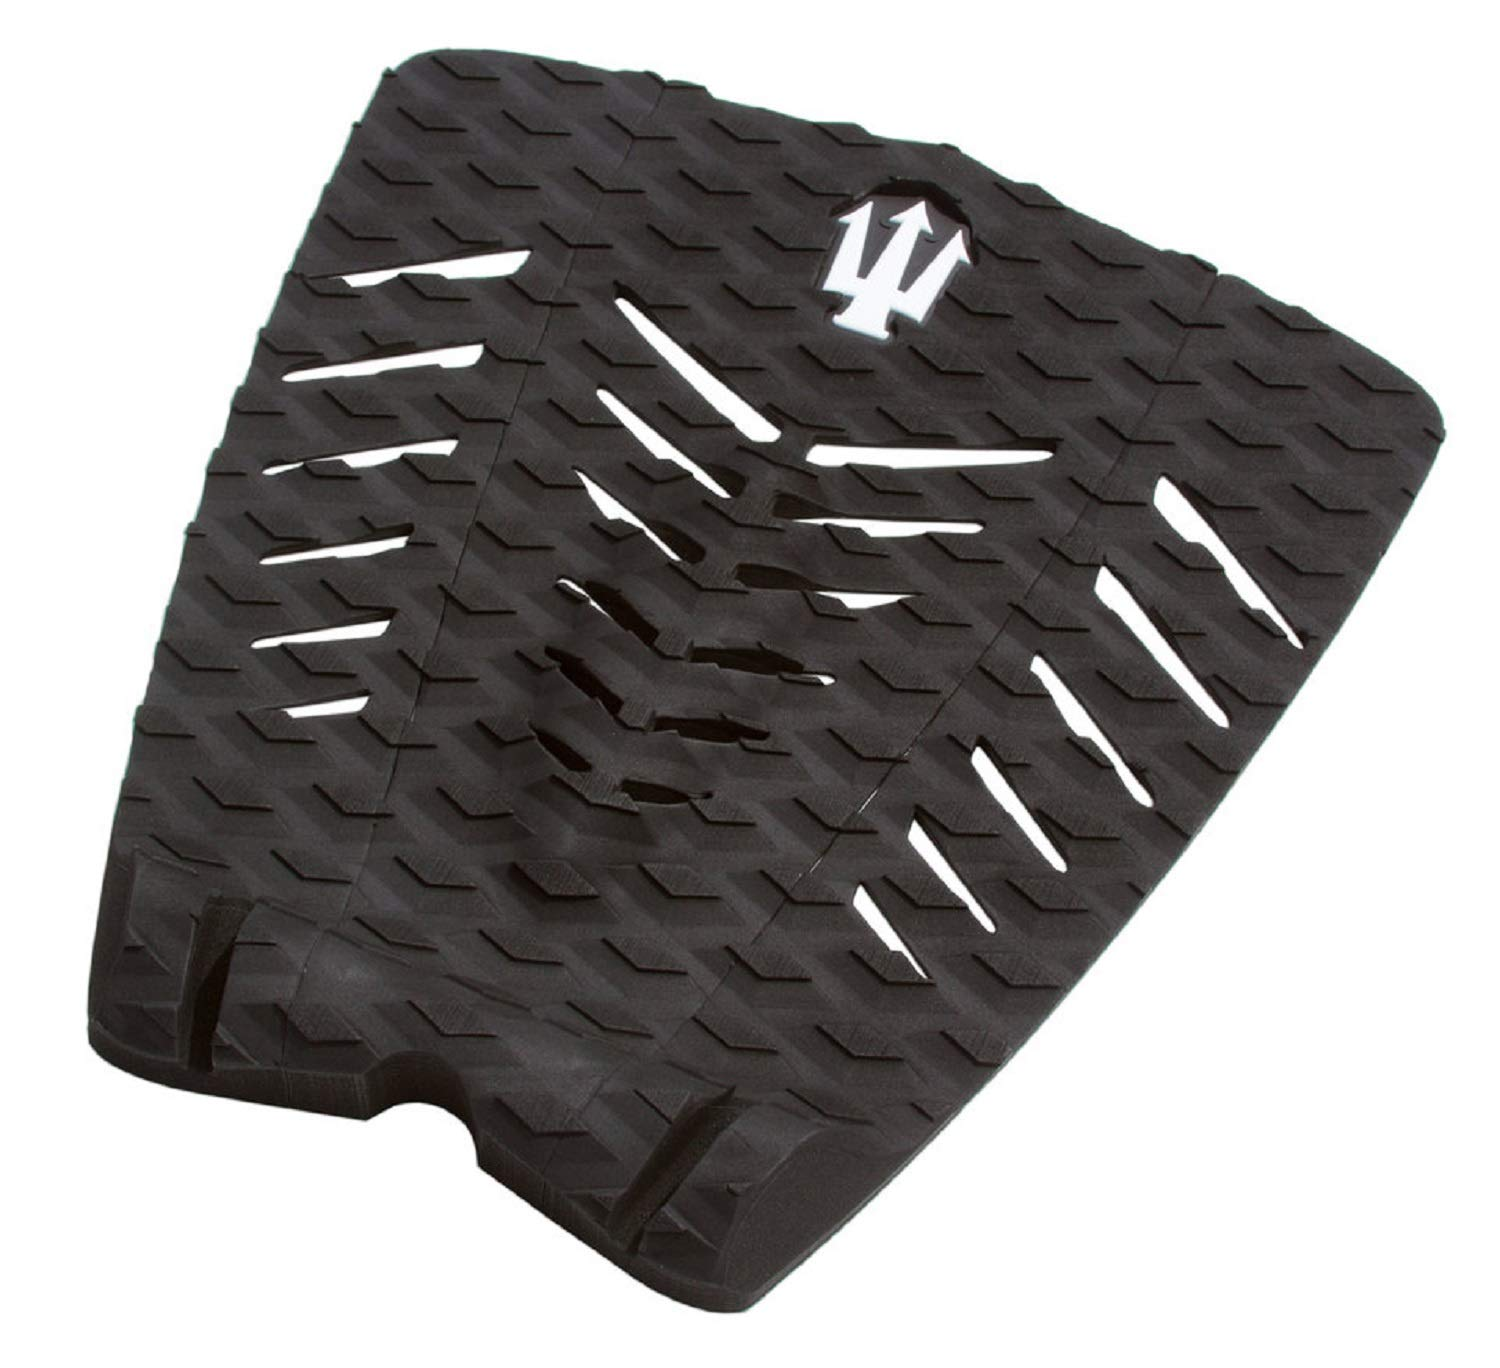 FarKing Ribbed Surfboard Tail Pad, Black/Blue - Surfboard Deck Grip by Far King: Amazon.es: Deportes y aire libre